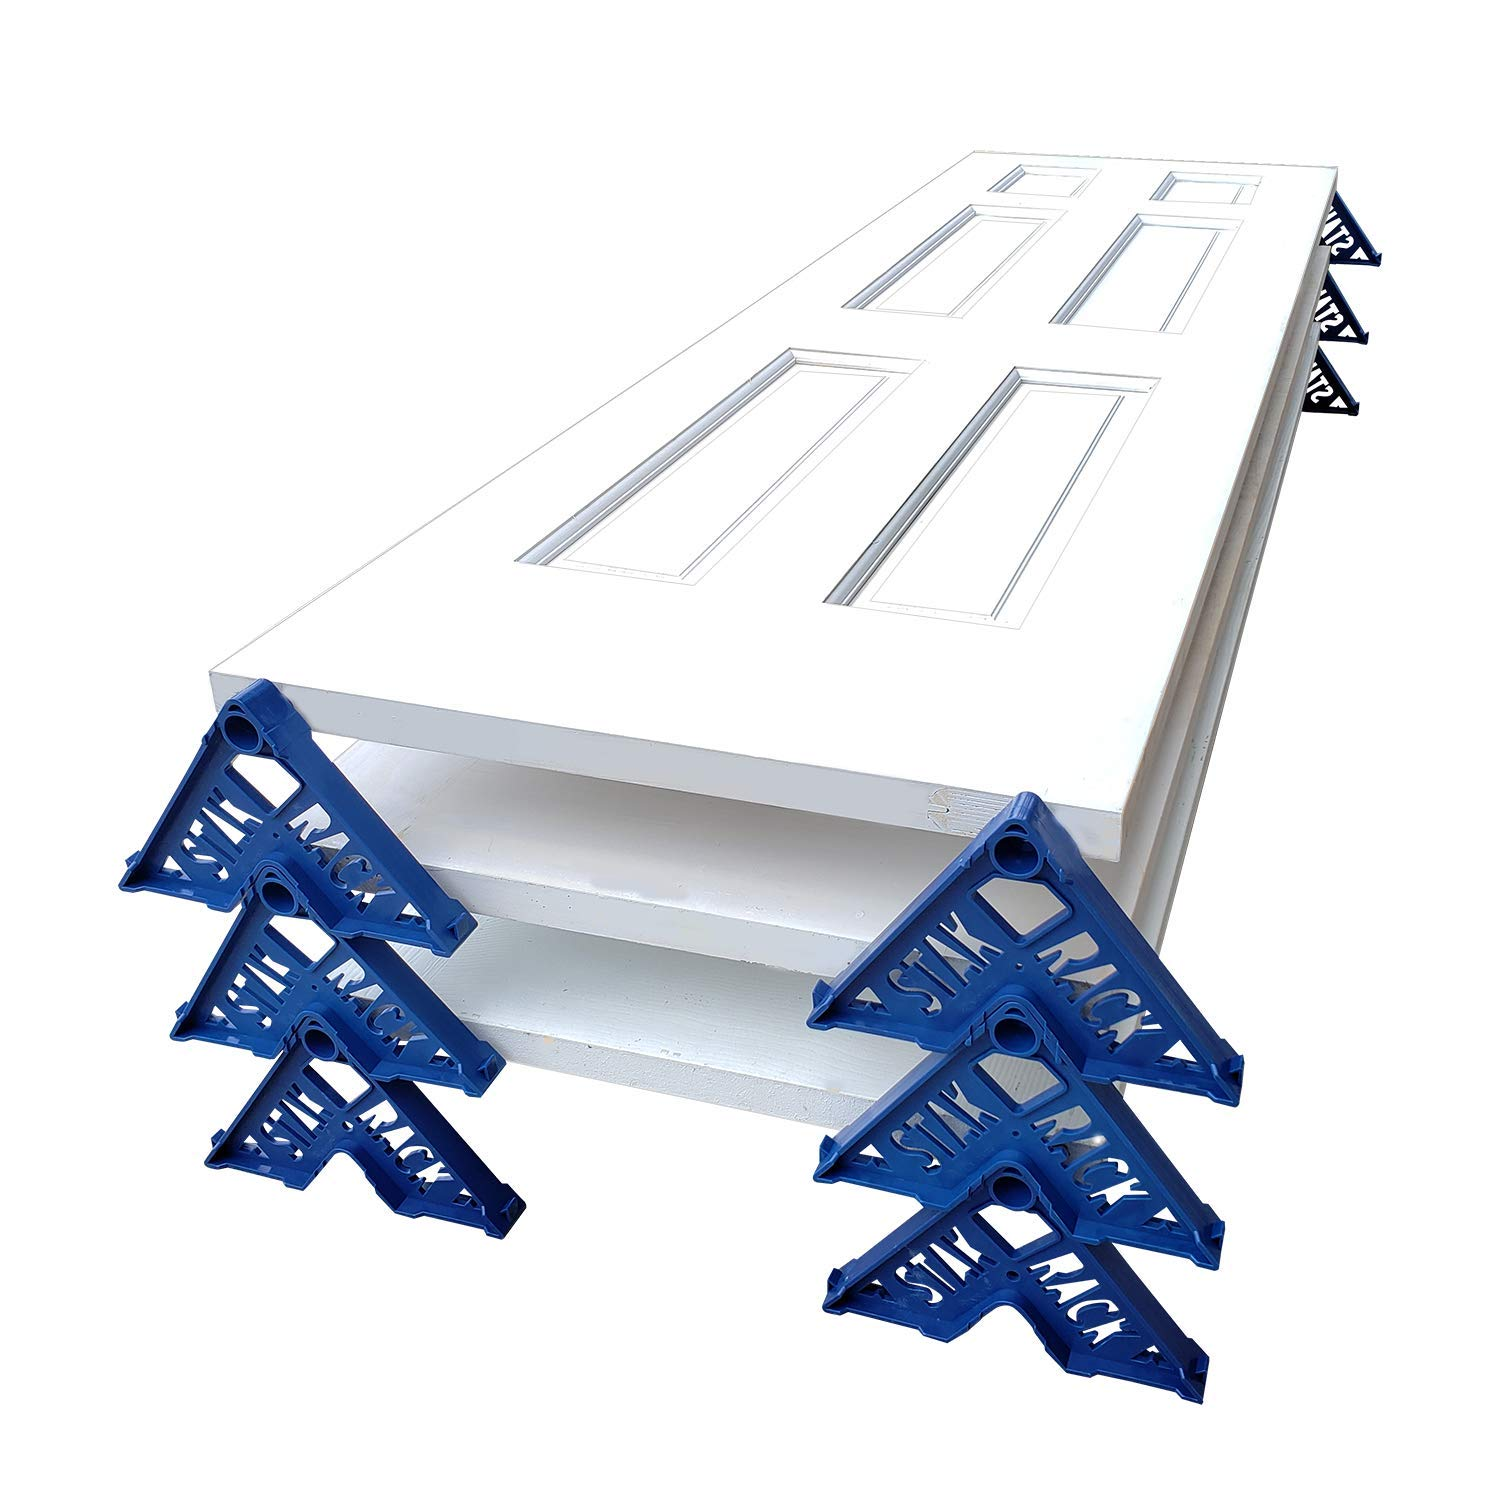 Stak Rack | 4 in 1 Painter's Accessory Tool | Stacking Design | Paint Interior or Exterior Doors, Trim & Kitchen Cabinet Doors| for Contractors & Homeowners (12) by STAK RACK YOUR JOB MADE EASY